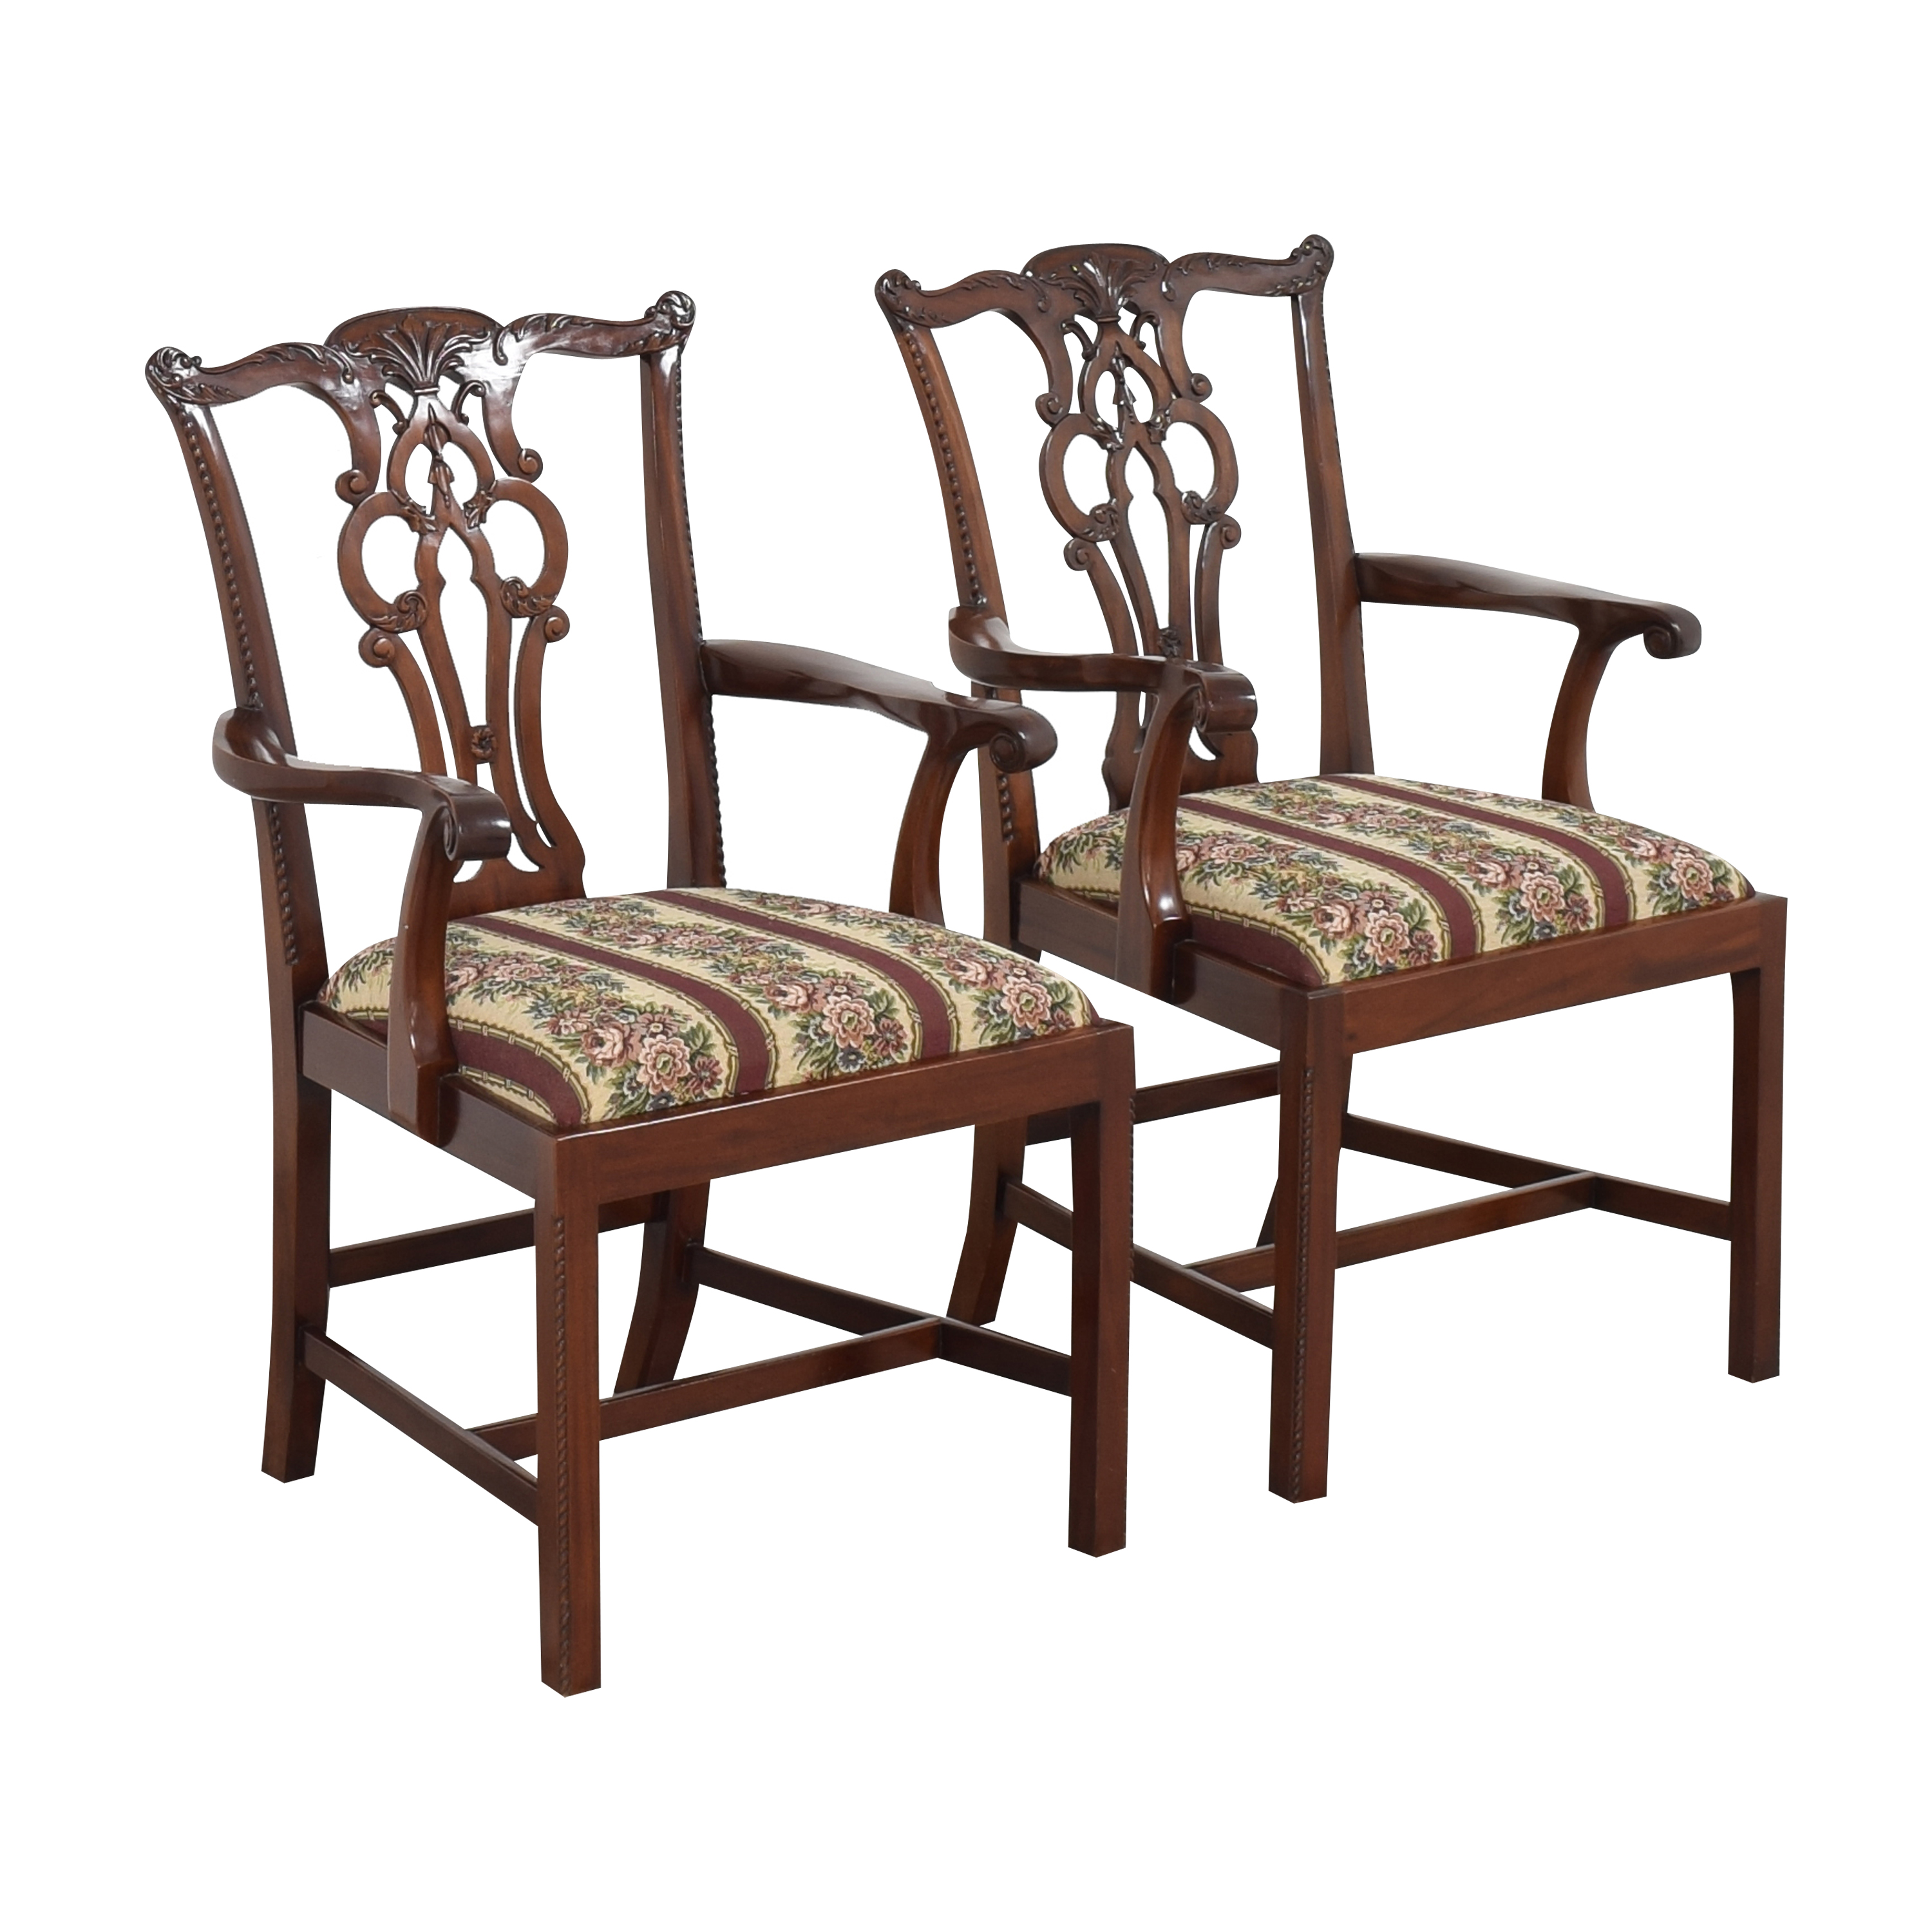 shop Maitland-Smith Maitland-Smith Chippendale Upholstered Dining Arm Chairs online